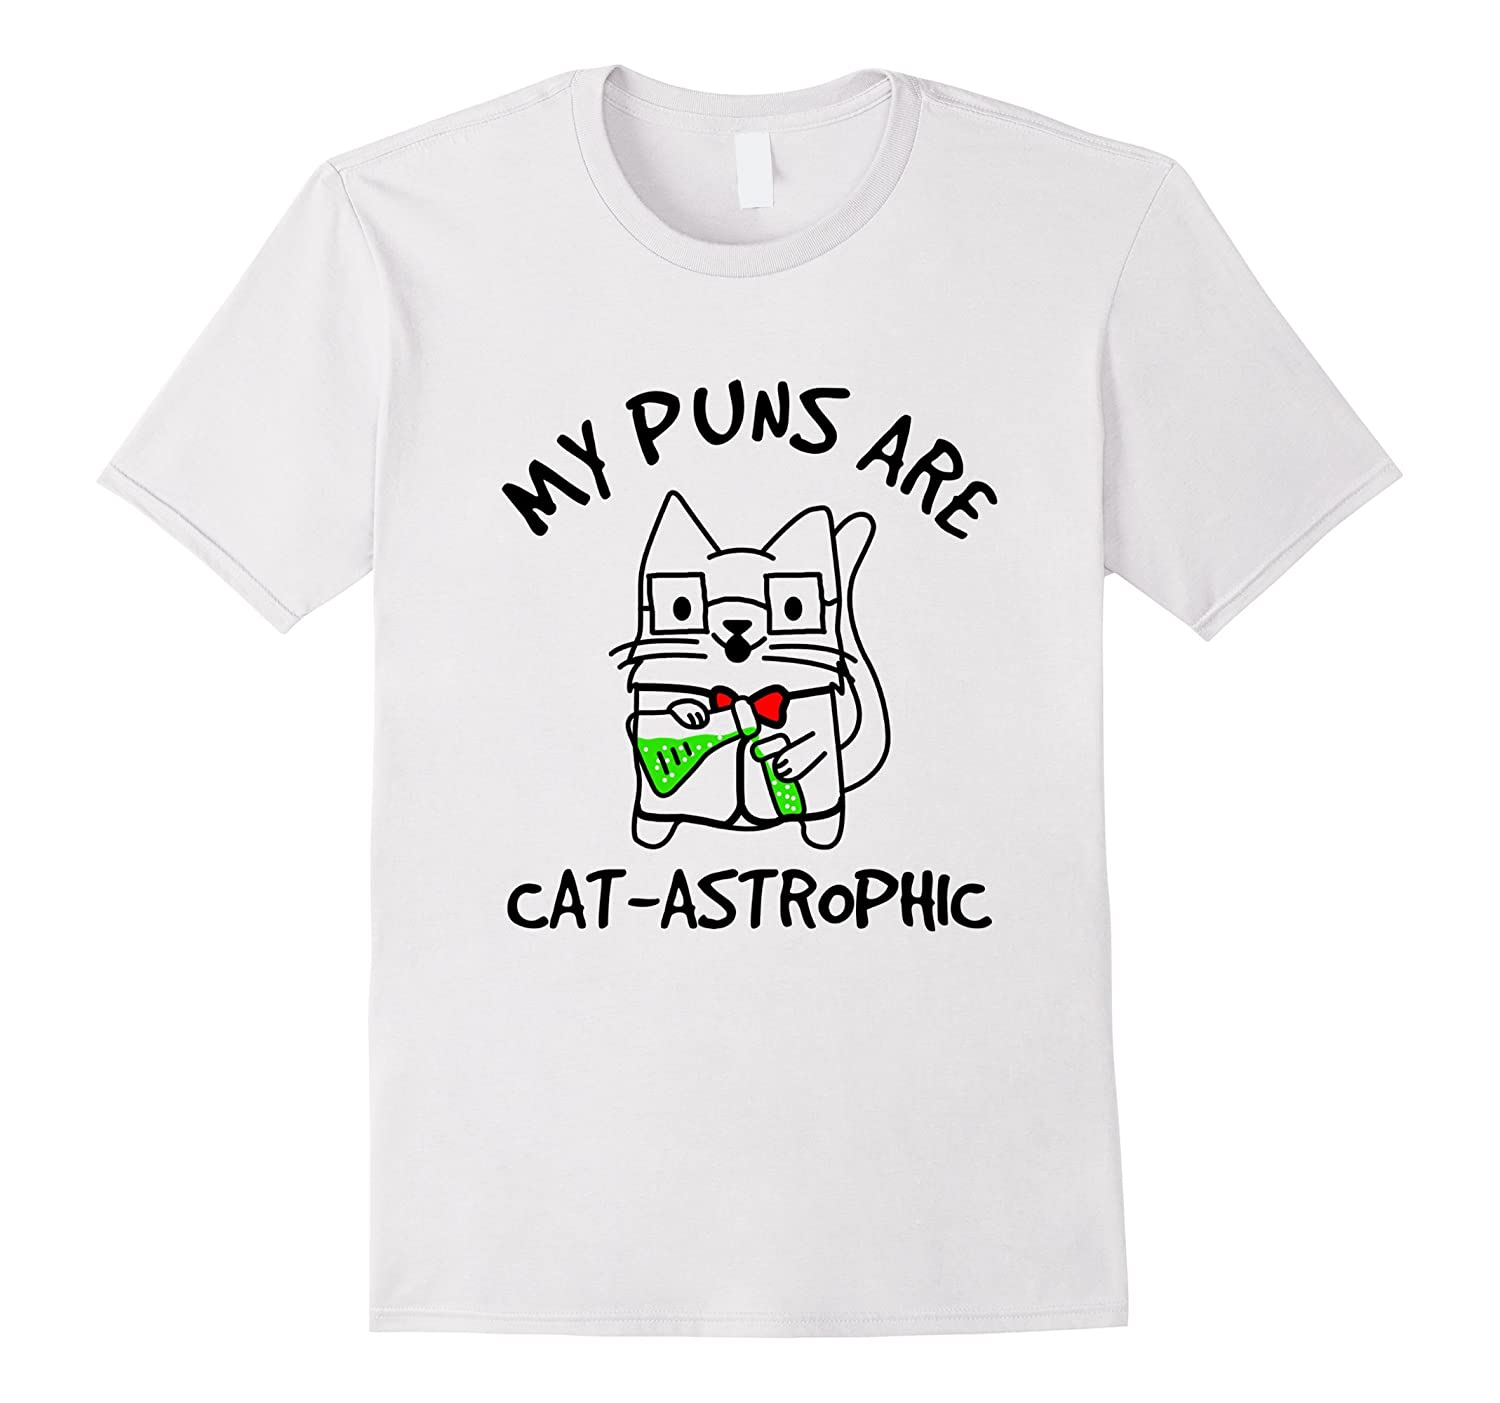 Funny Puns Cat as trophic Cat Shirts Cute Cat Quote Tees Goatstee